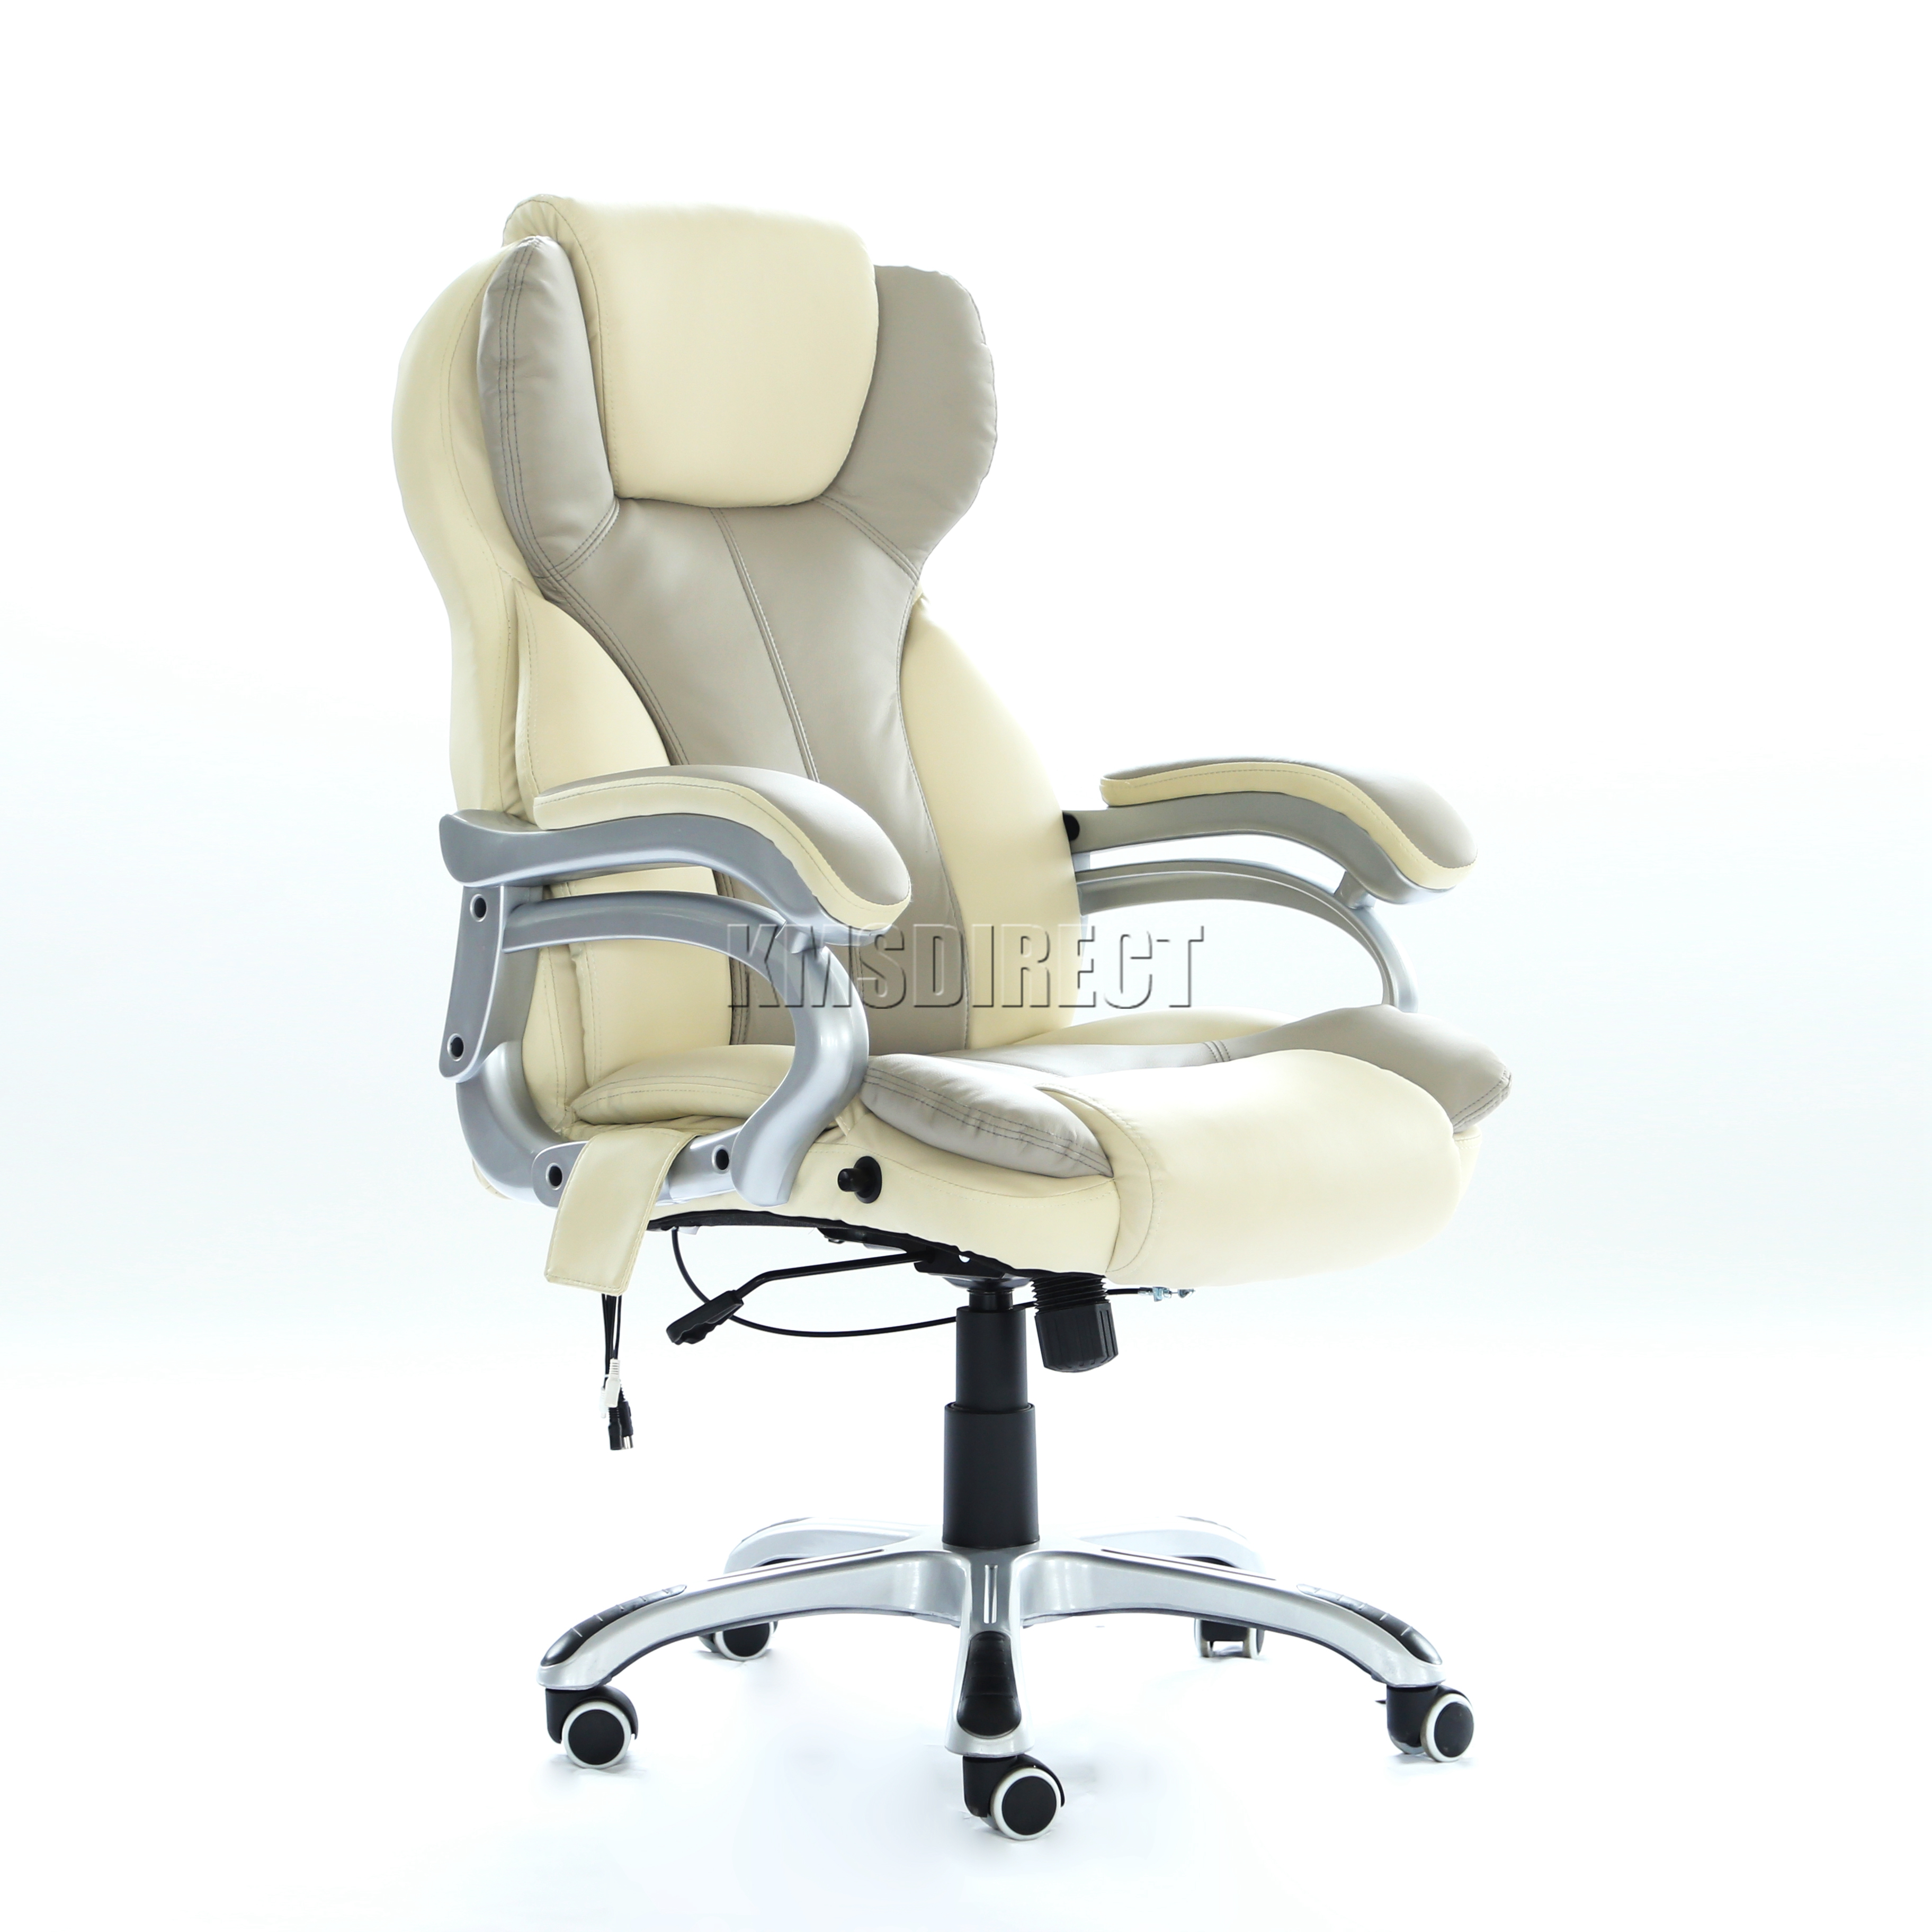 Reclining Computer Chair Foxhunter Luxury 6 Point Massage Office Computer Chair